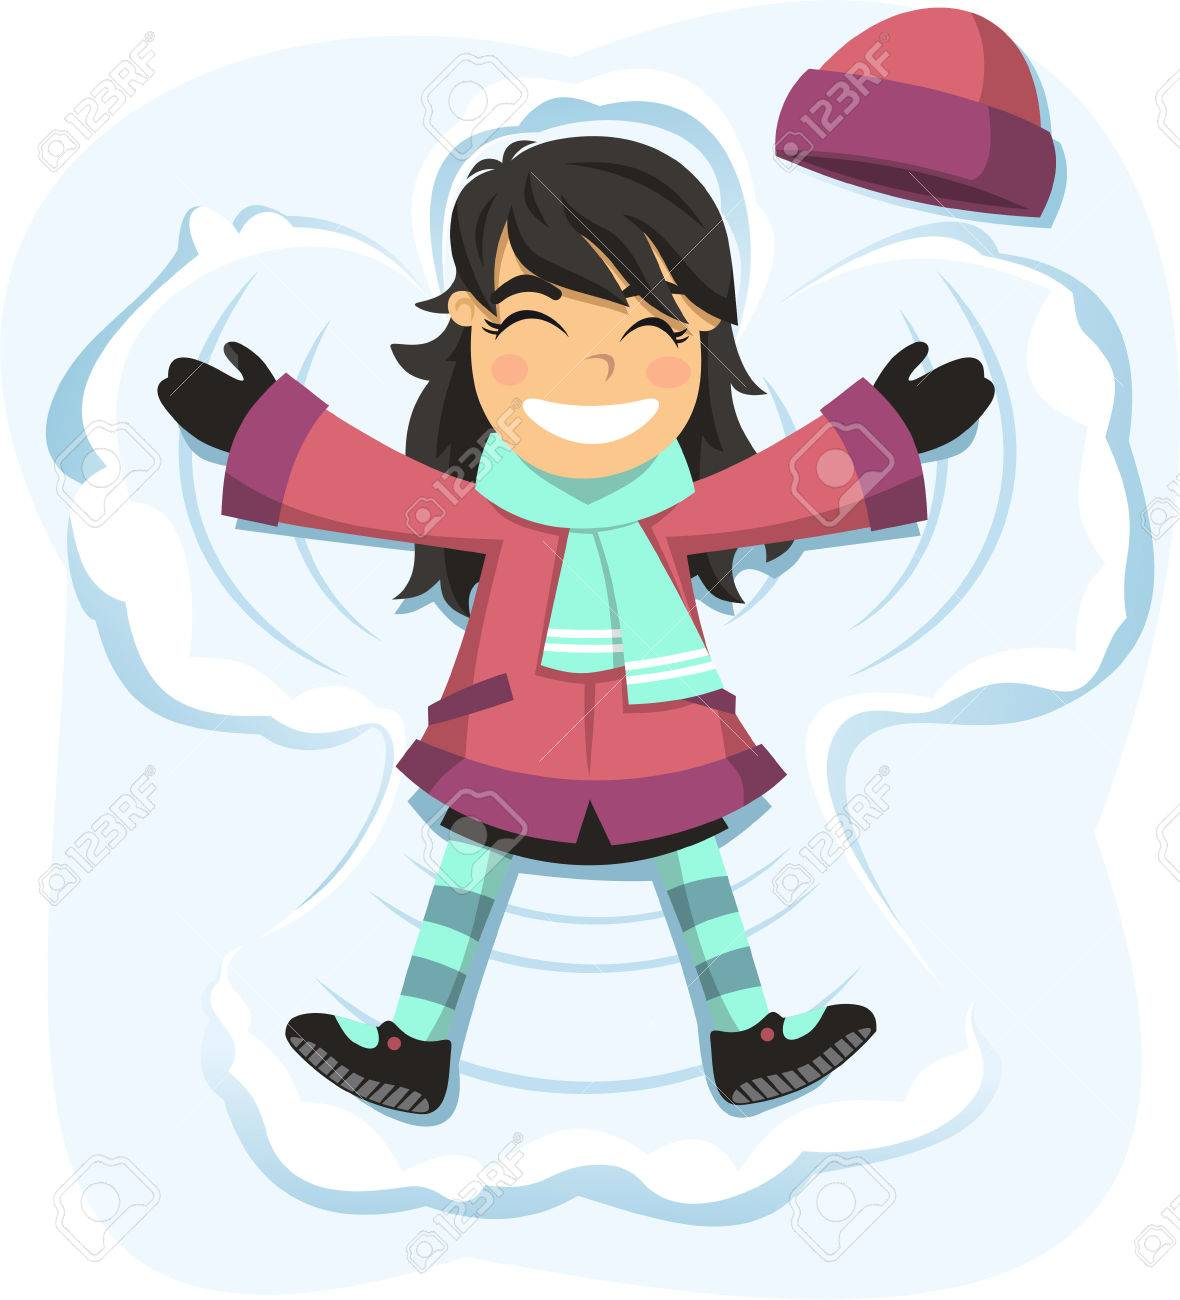 snow angel happy girl enjoying snowy day royalty free cliparts rh 123rf com